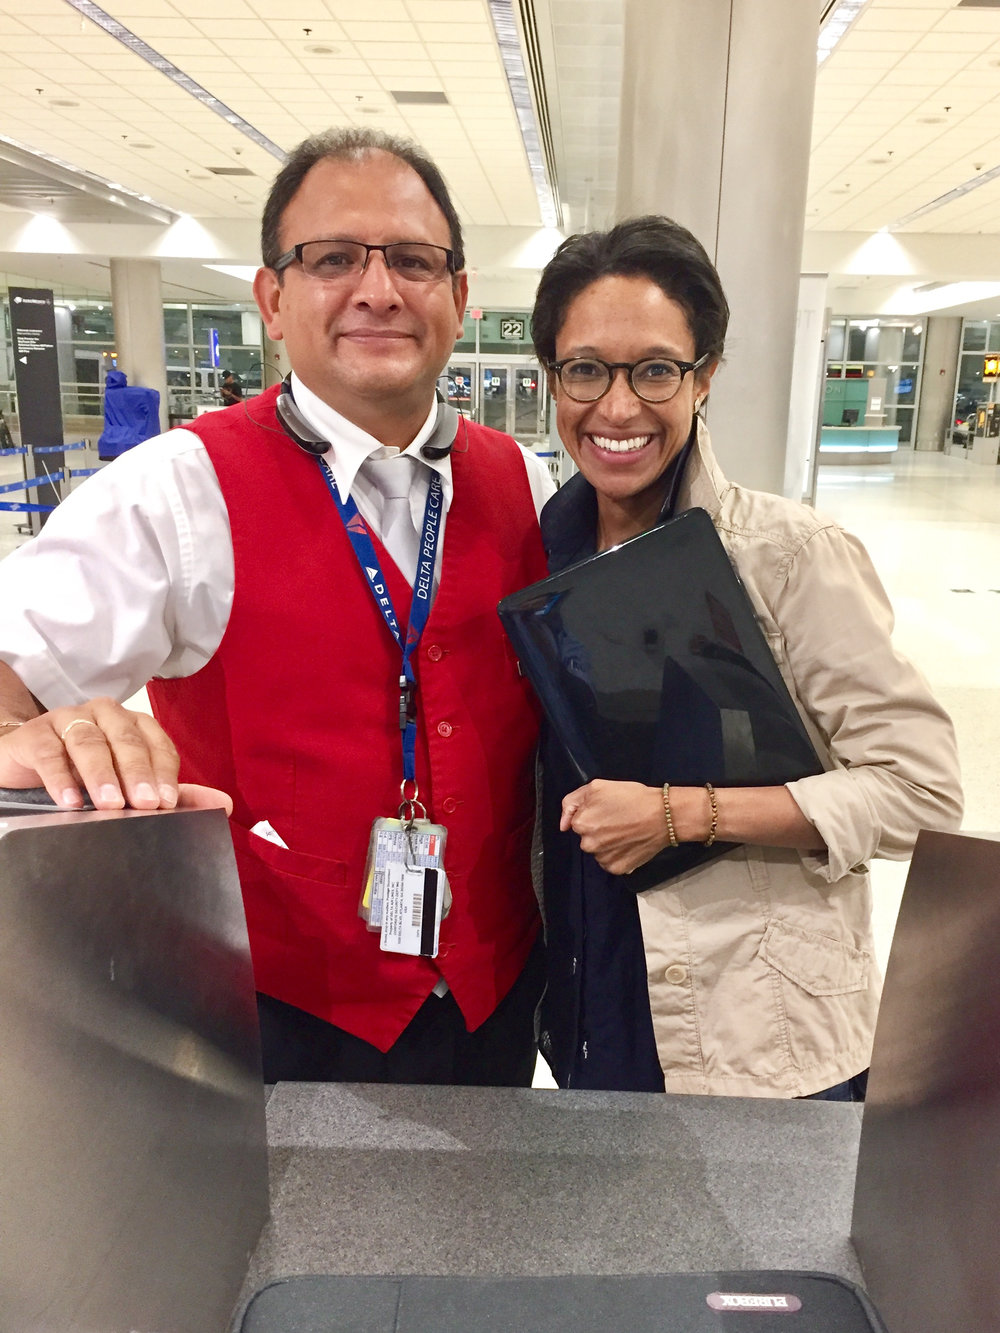 sheree mitchell with walter, the Delta agent that returned her missing computer from Flight DL2815 on Aug. 12th, 2017